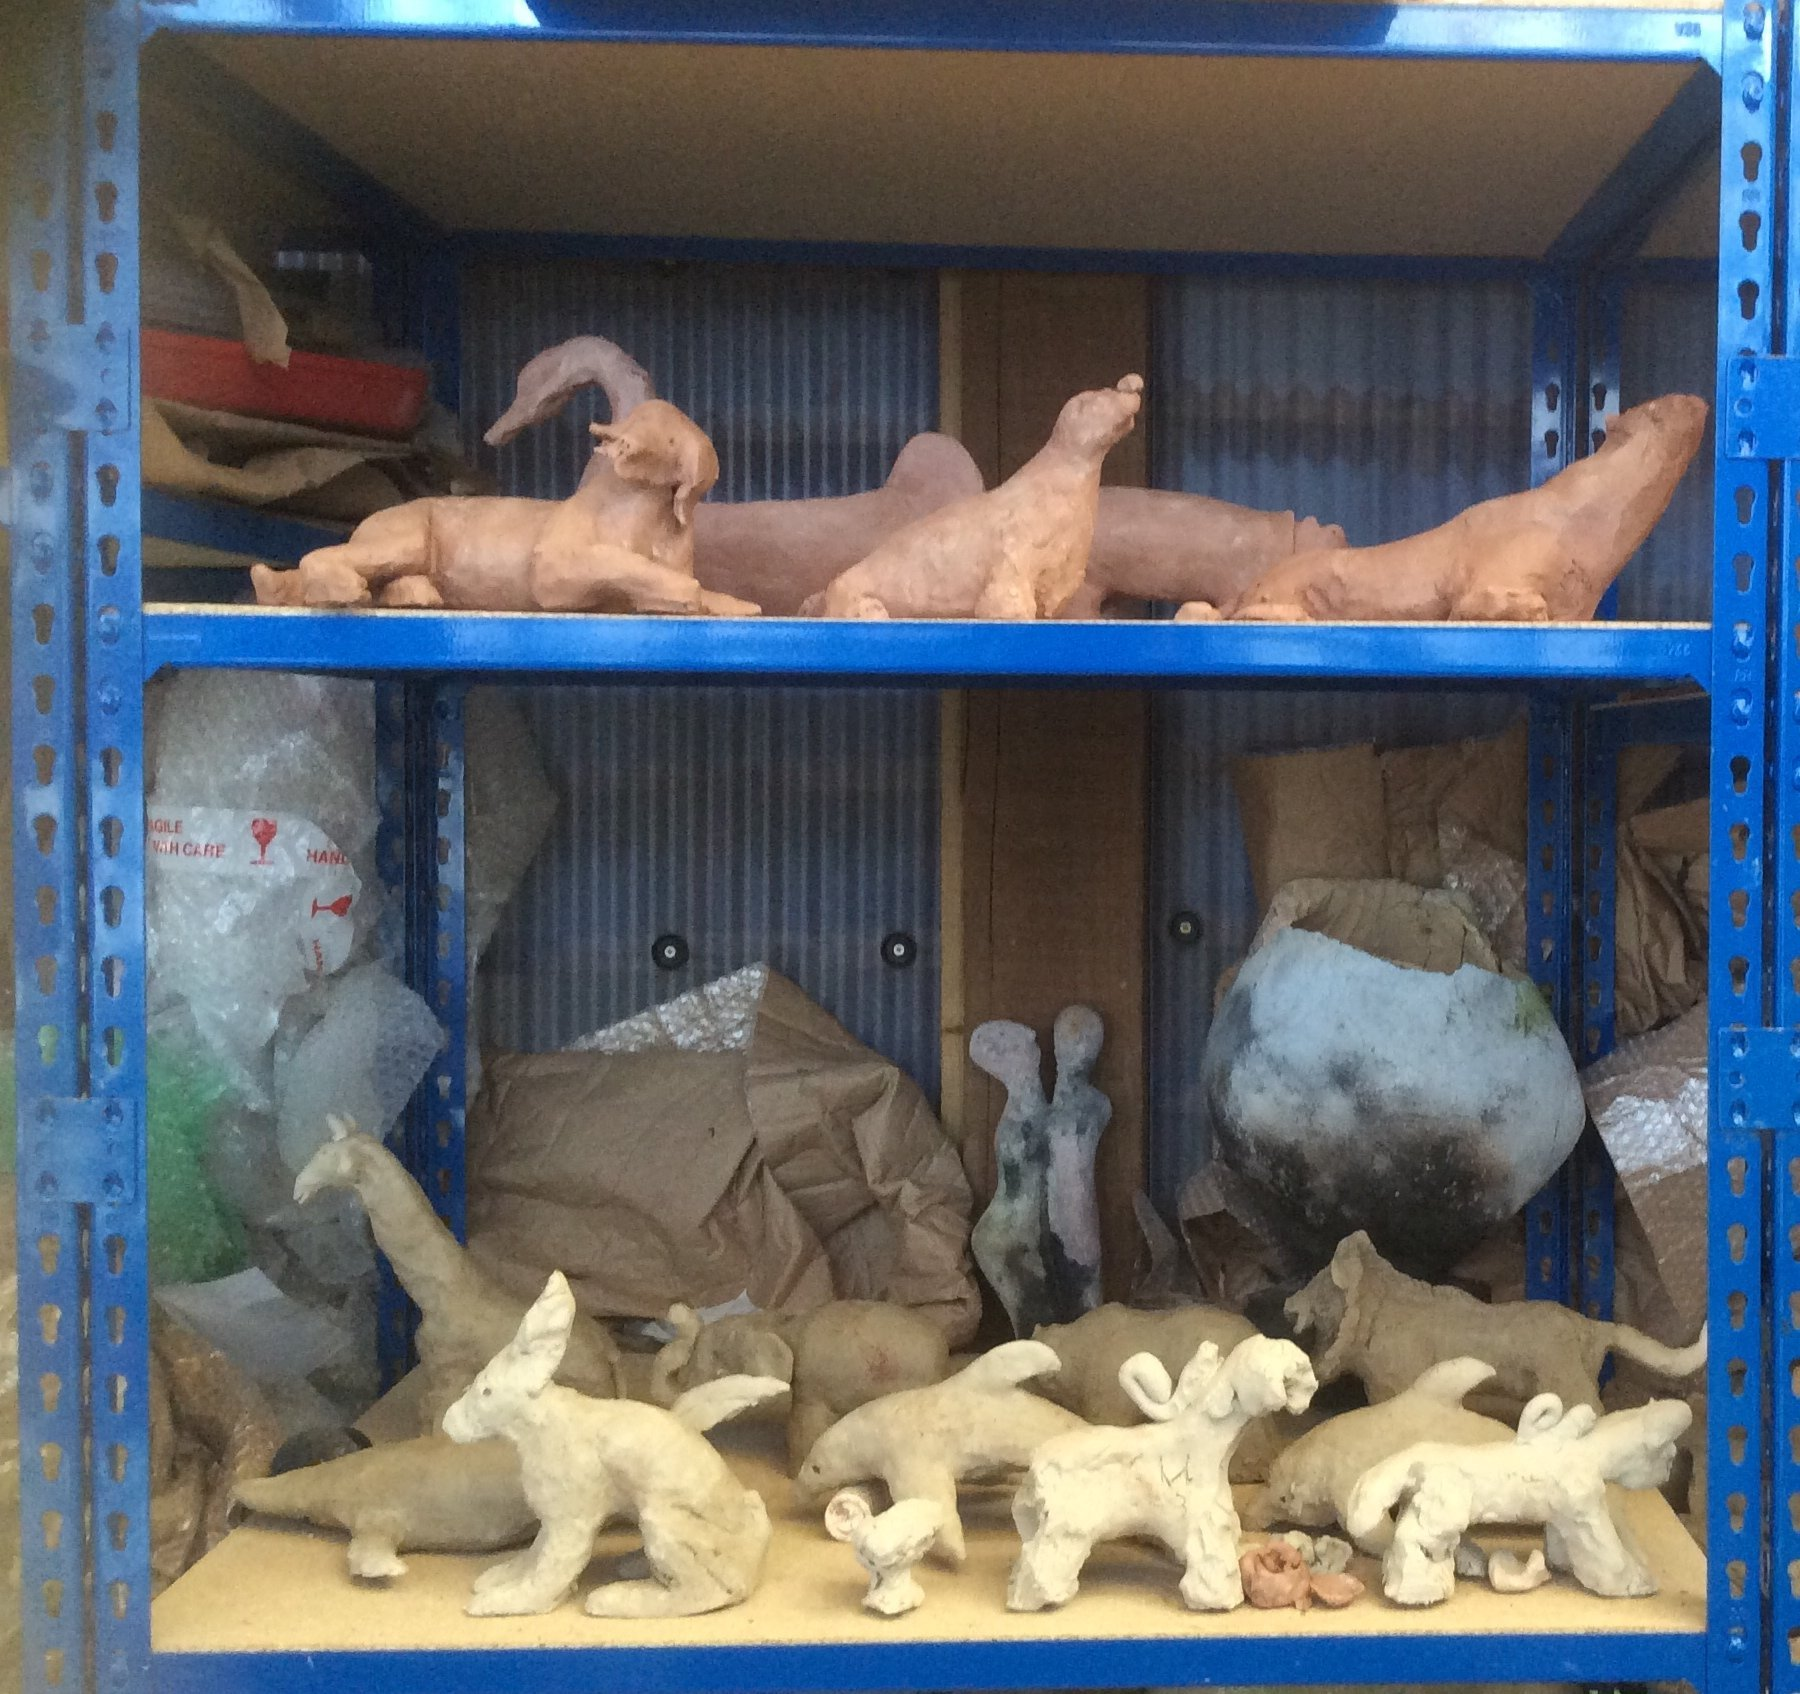 More heavy duty shelving in the large ion shed -  sculptures ready to dry, and then be fired